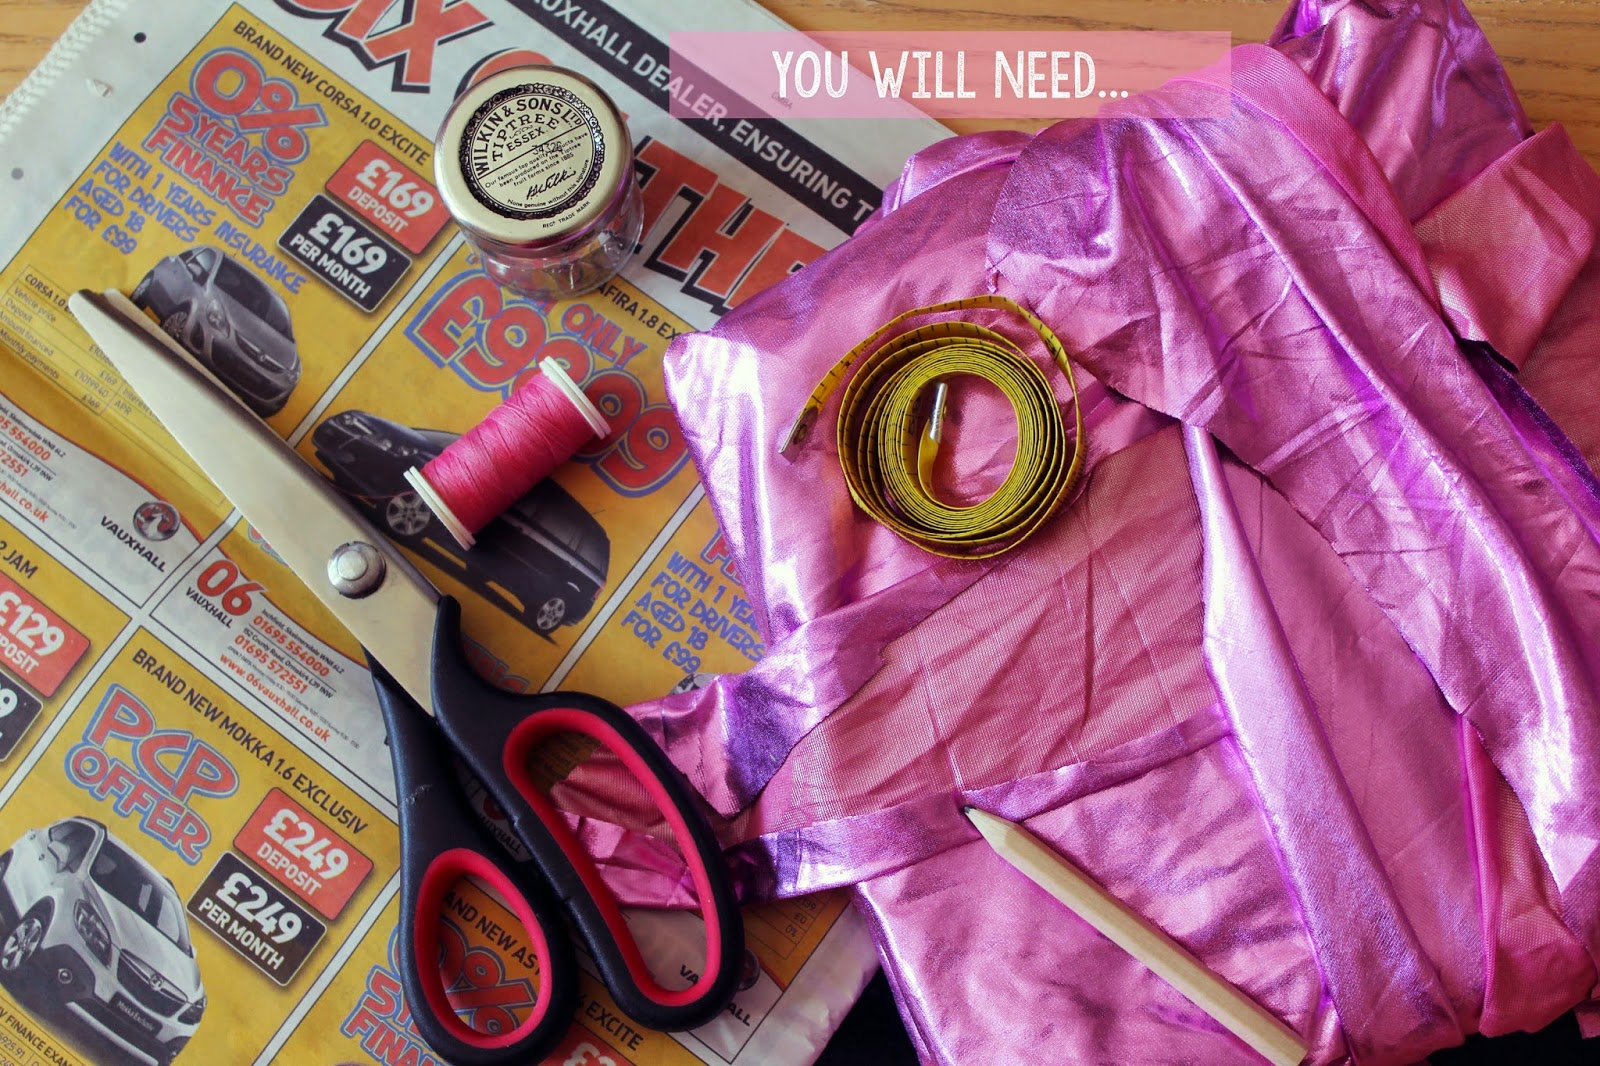 list of sewing equipment what you will need to make your own halter crop top